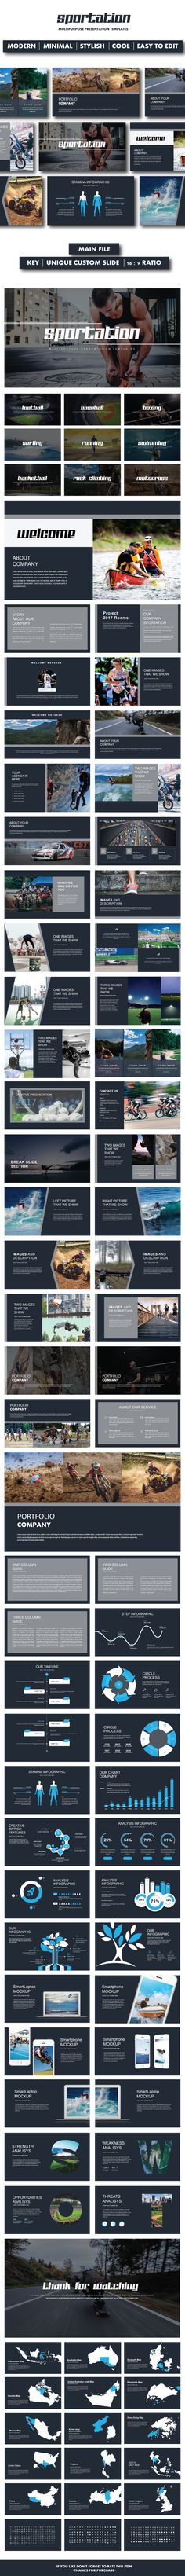 Sportation Keynote Templates - Keynote Templates Presentation Templates Professional Powerpoint Templates, Business Powerpoint Templates, Powerpoint Presentation Templates, Keynote Template, Graphic Design Templates, Graphic Design Art, Typography Design, Presentation Slides, Presentation Design